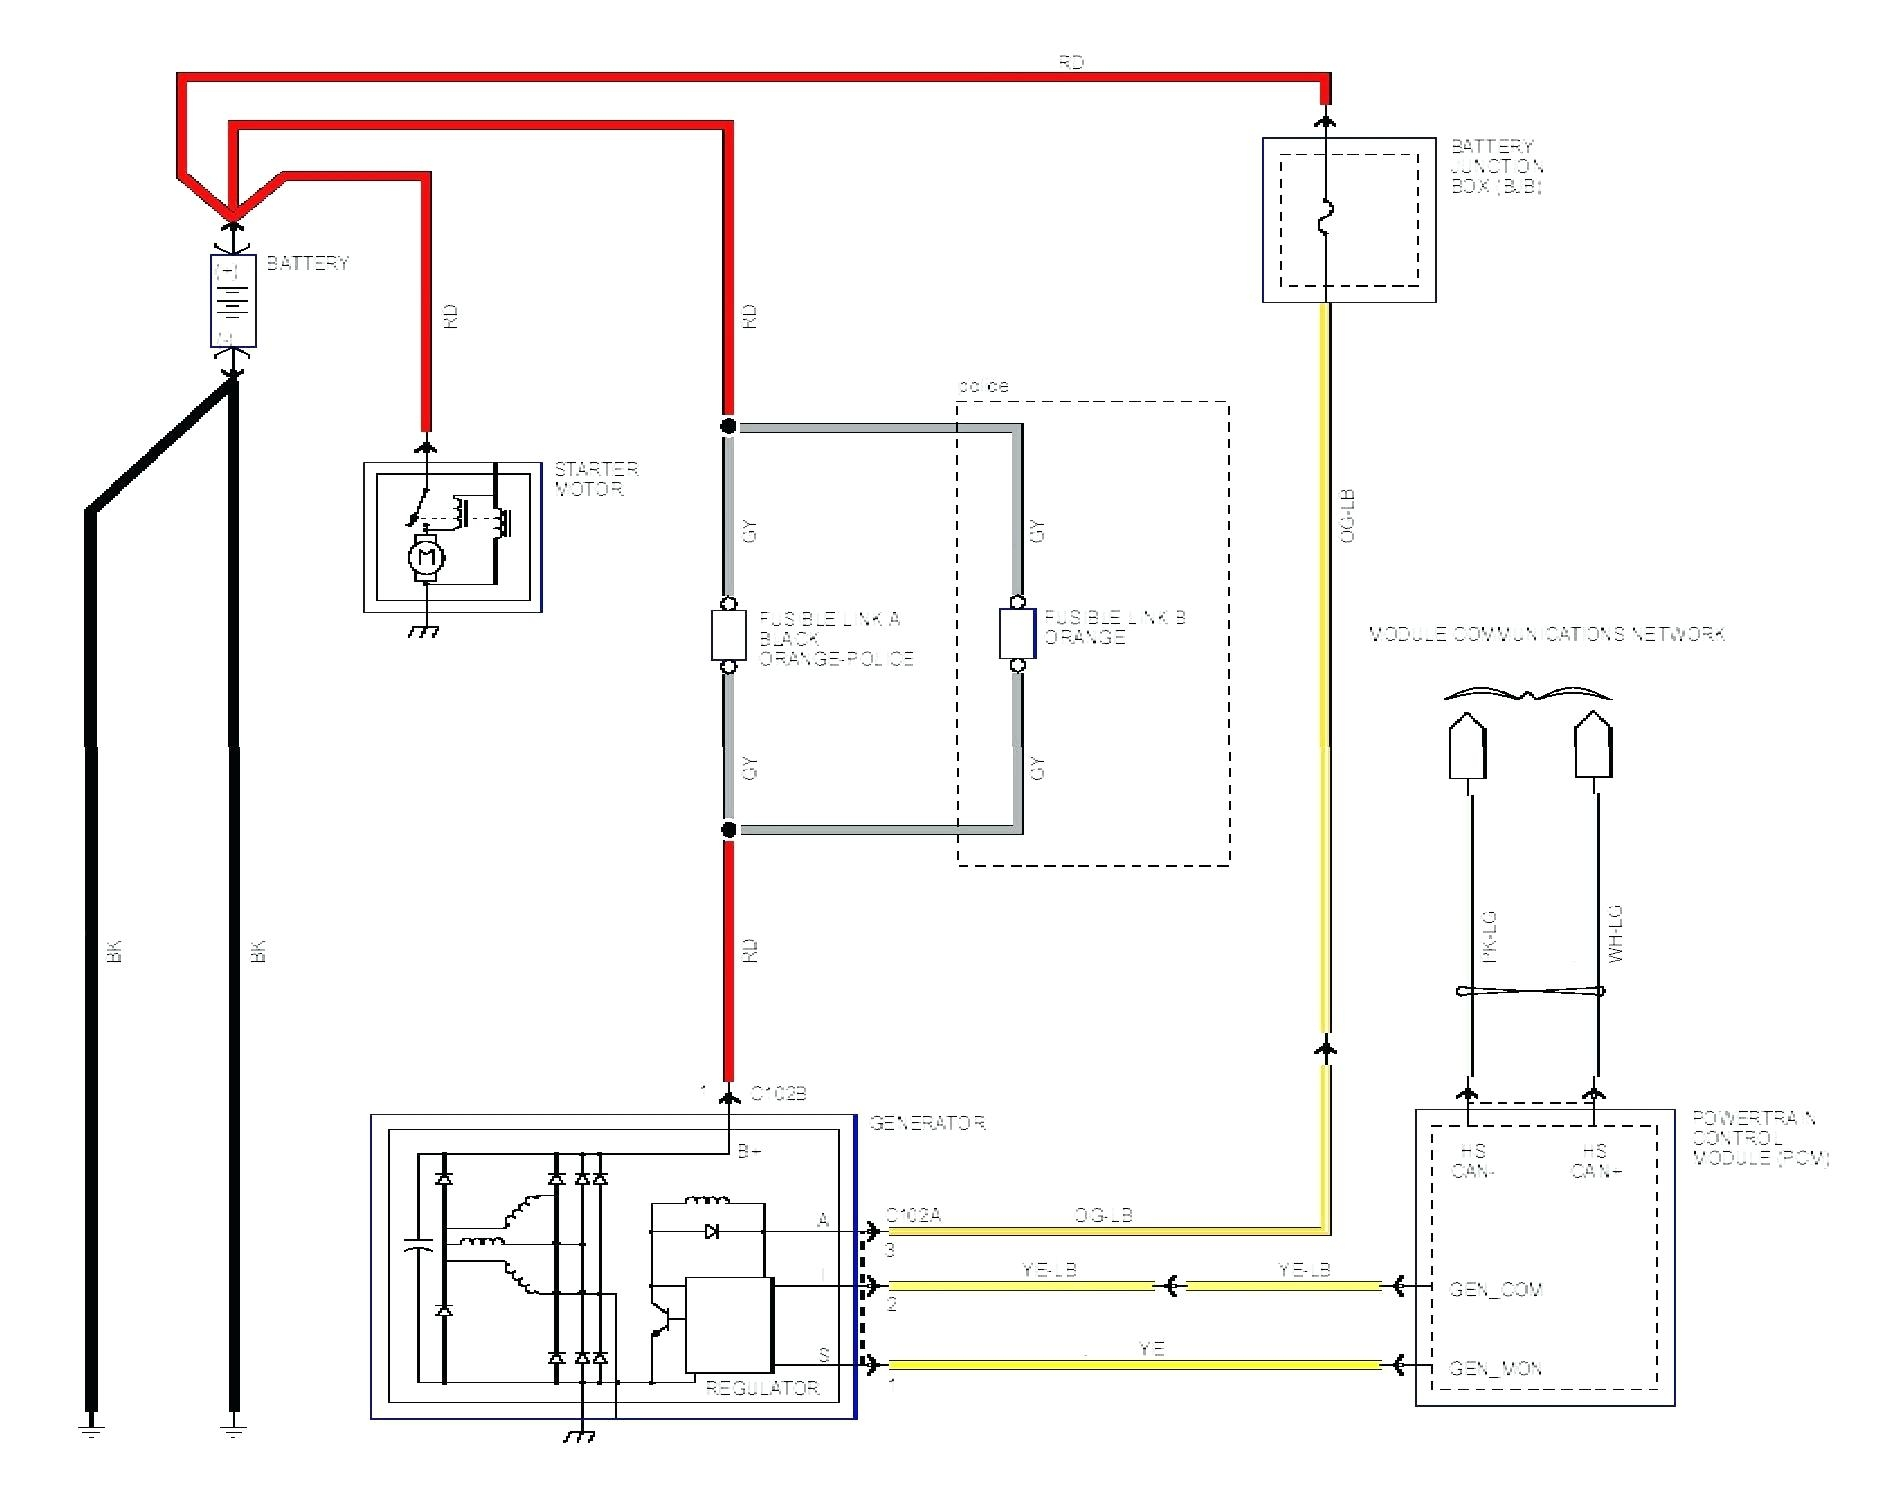 hight resolution of duct smoke detector wiring diagram simplex smoke detector wiring diagrams duct diagram system sensor for